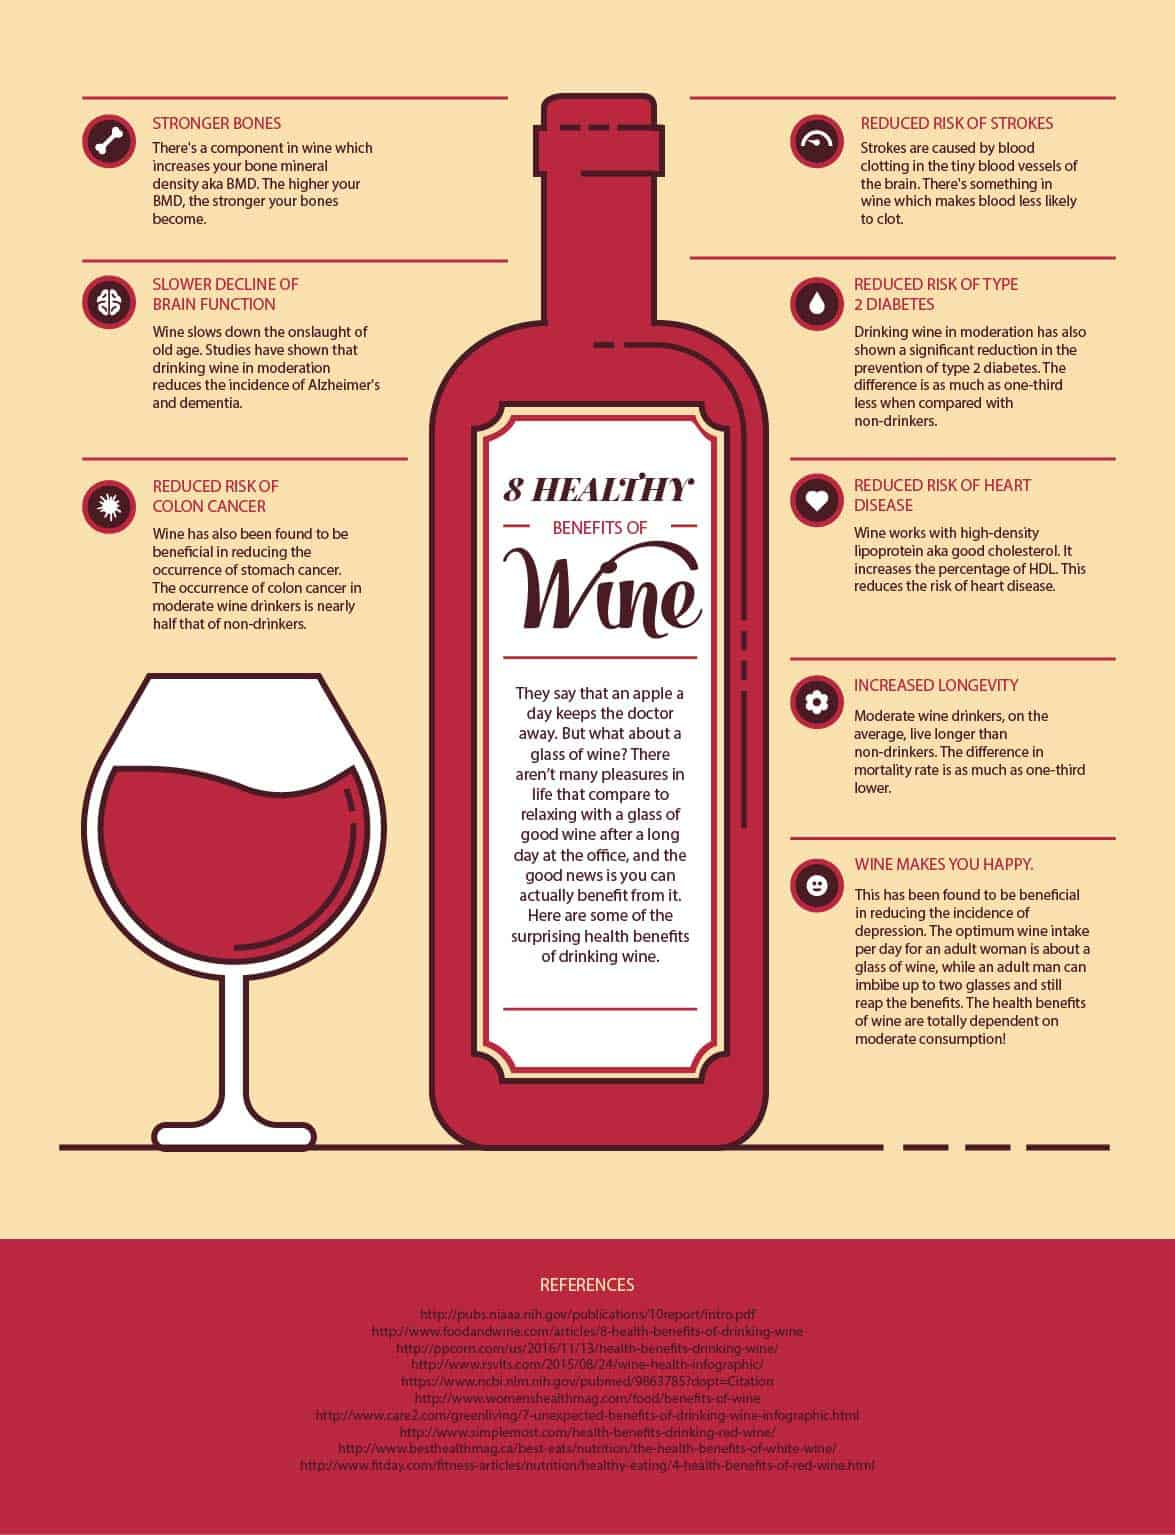 Drinking wine every day - is it helpful? 11